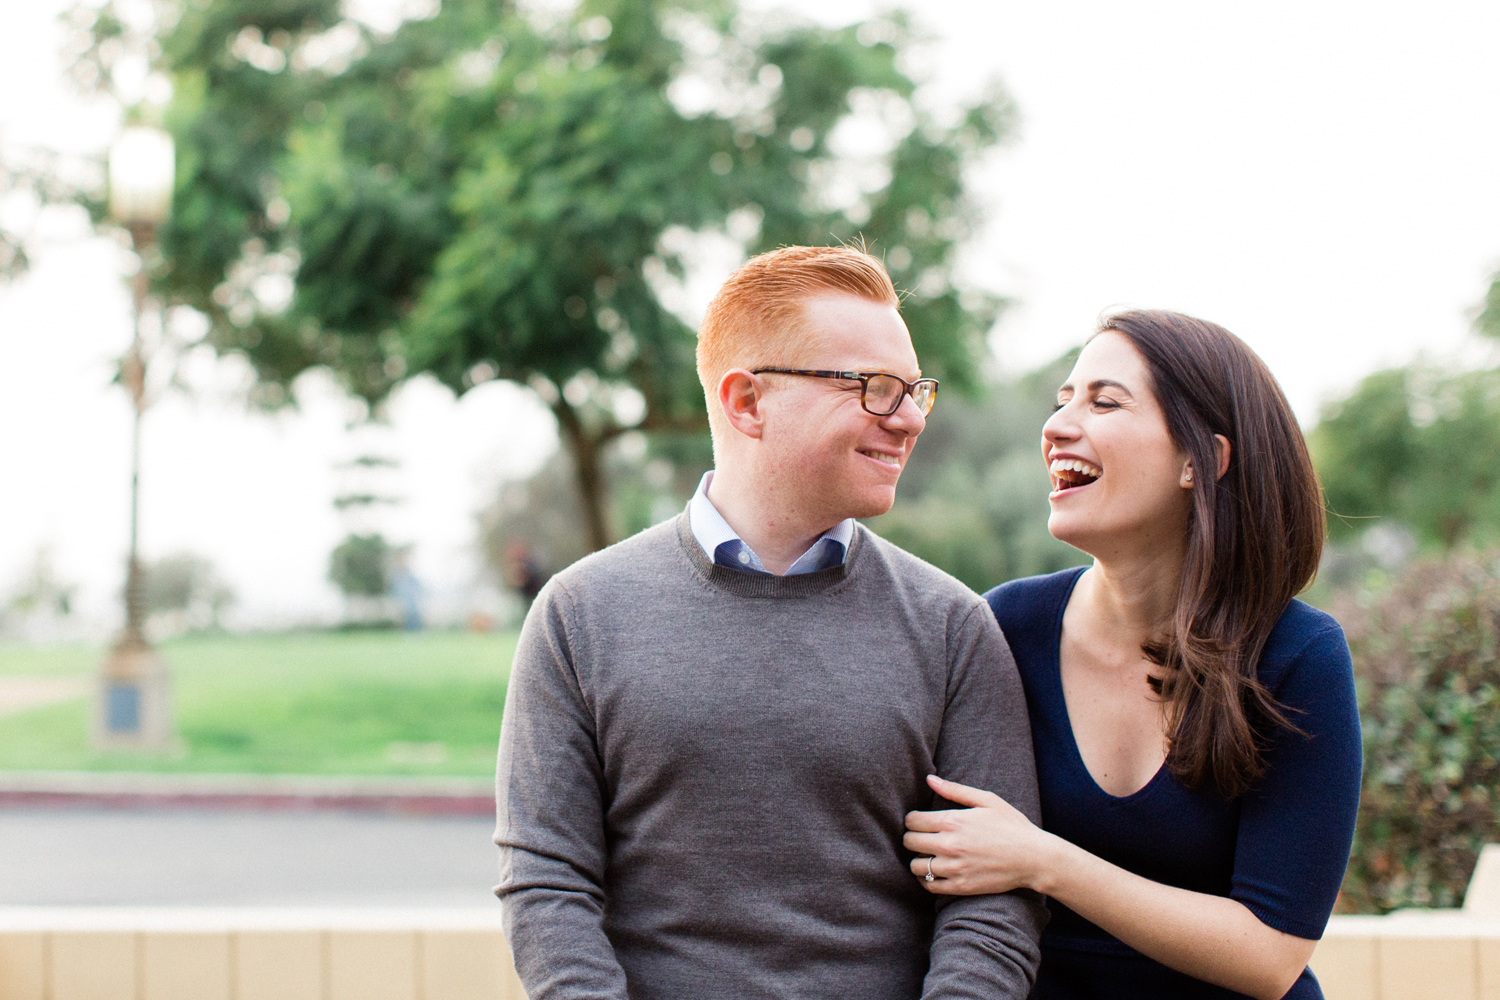 barnsdall-park-engagement-photography017.jpg